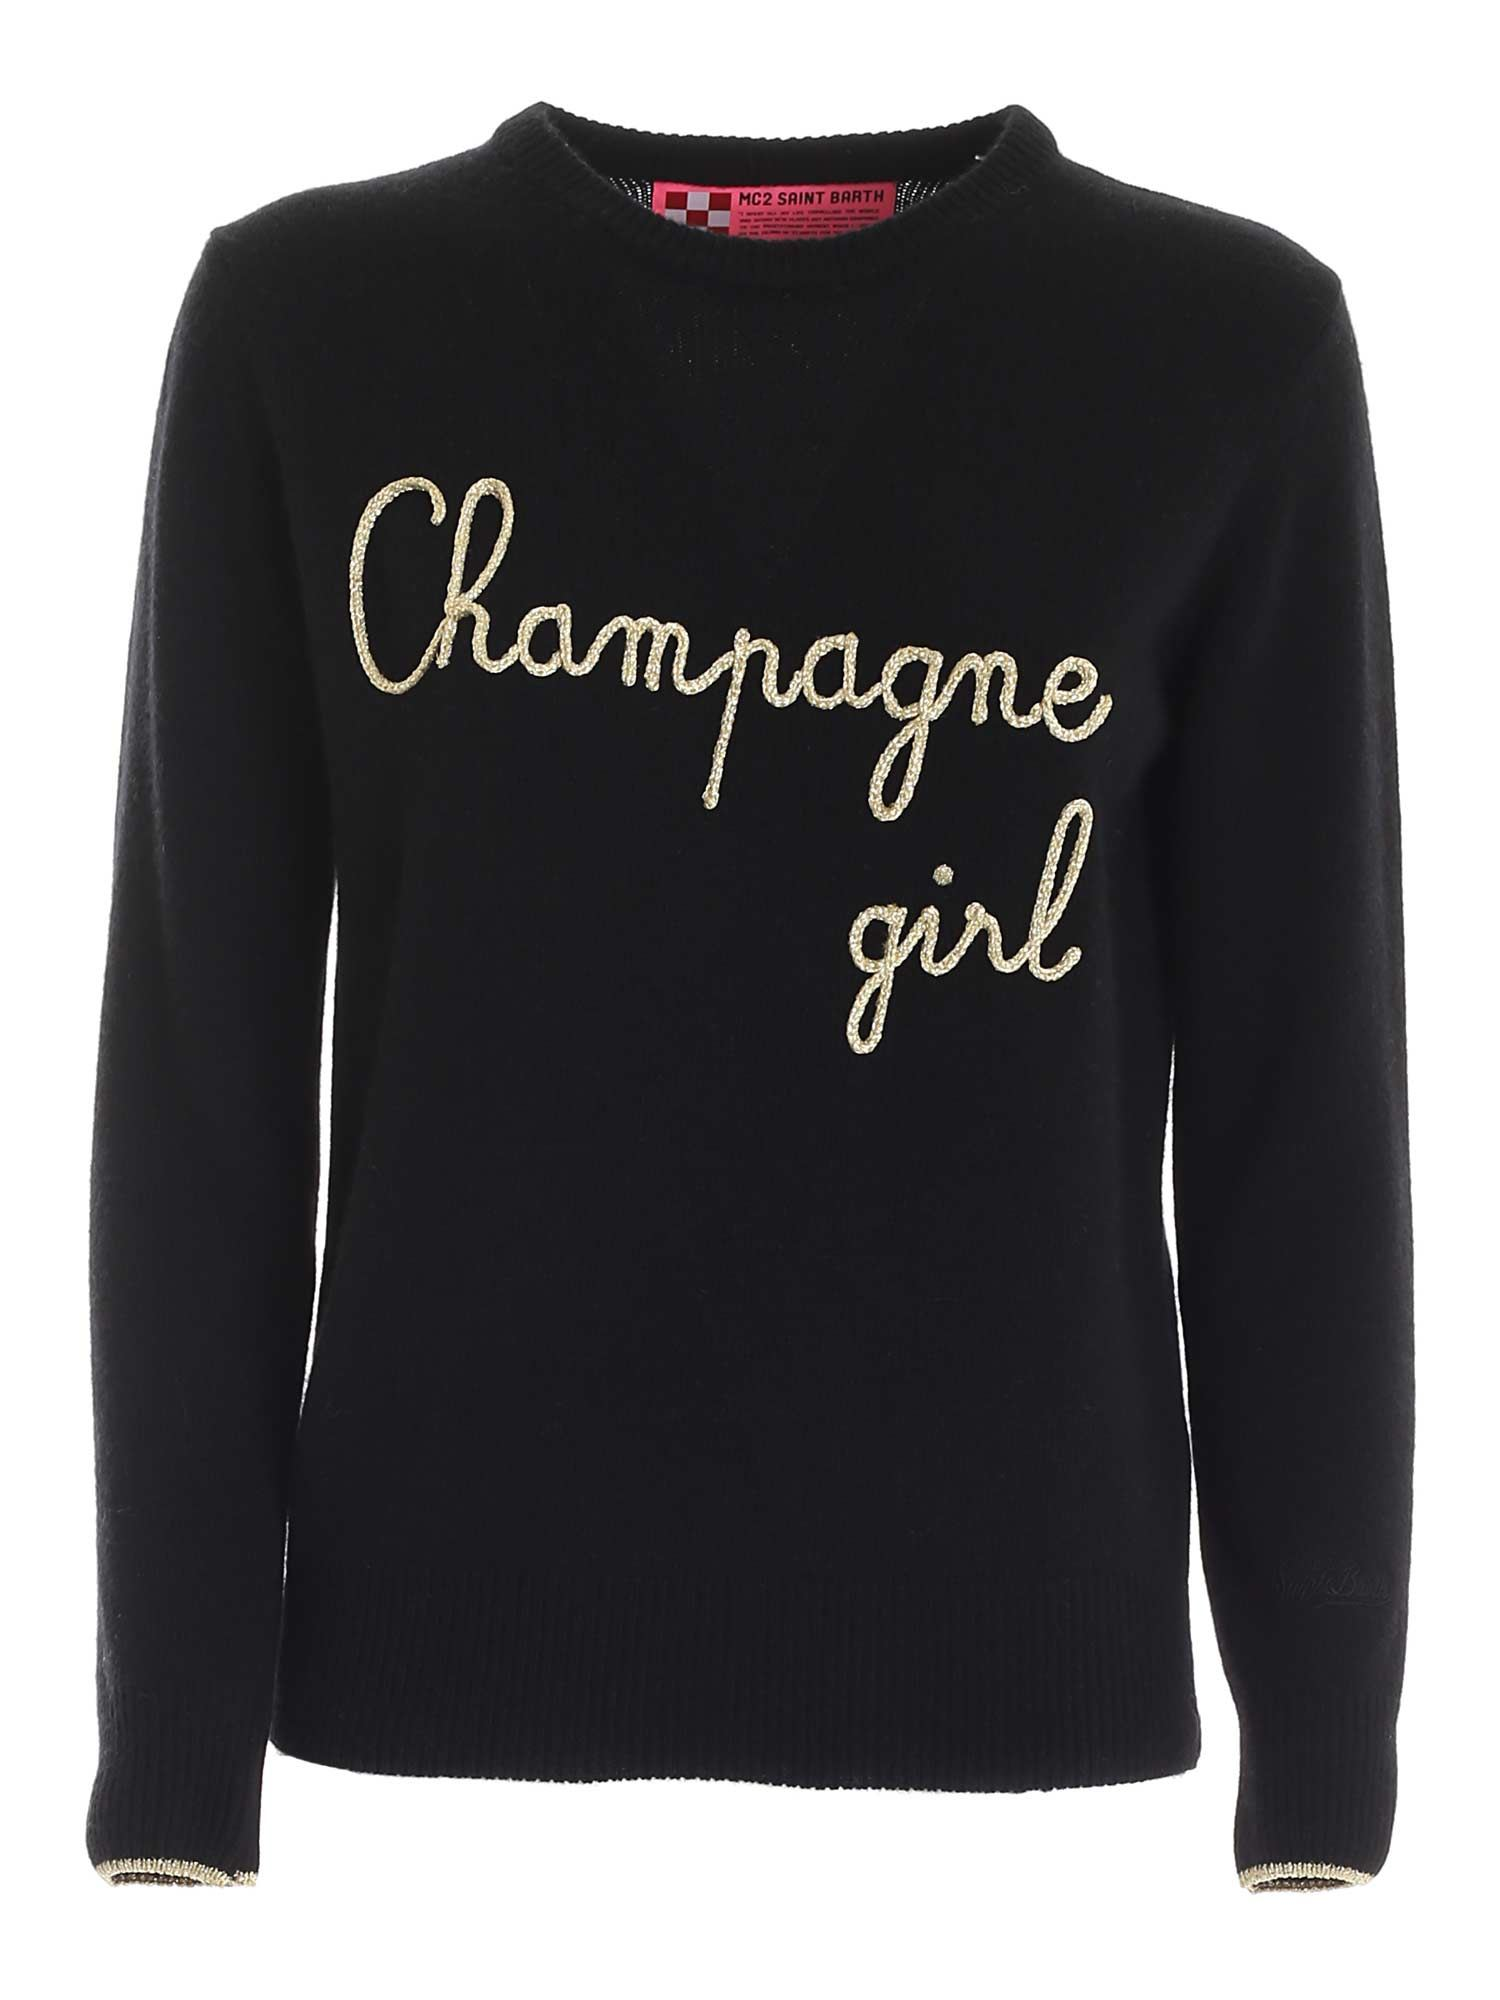 Mc2 Saint Barth BLACK PULLOVER WITH CHAMPAGNE GIRL EMBROIDERY